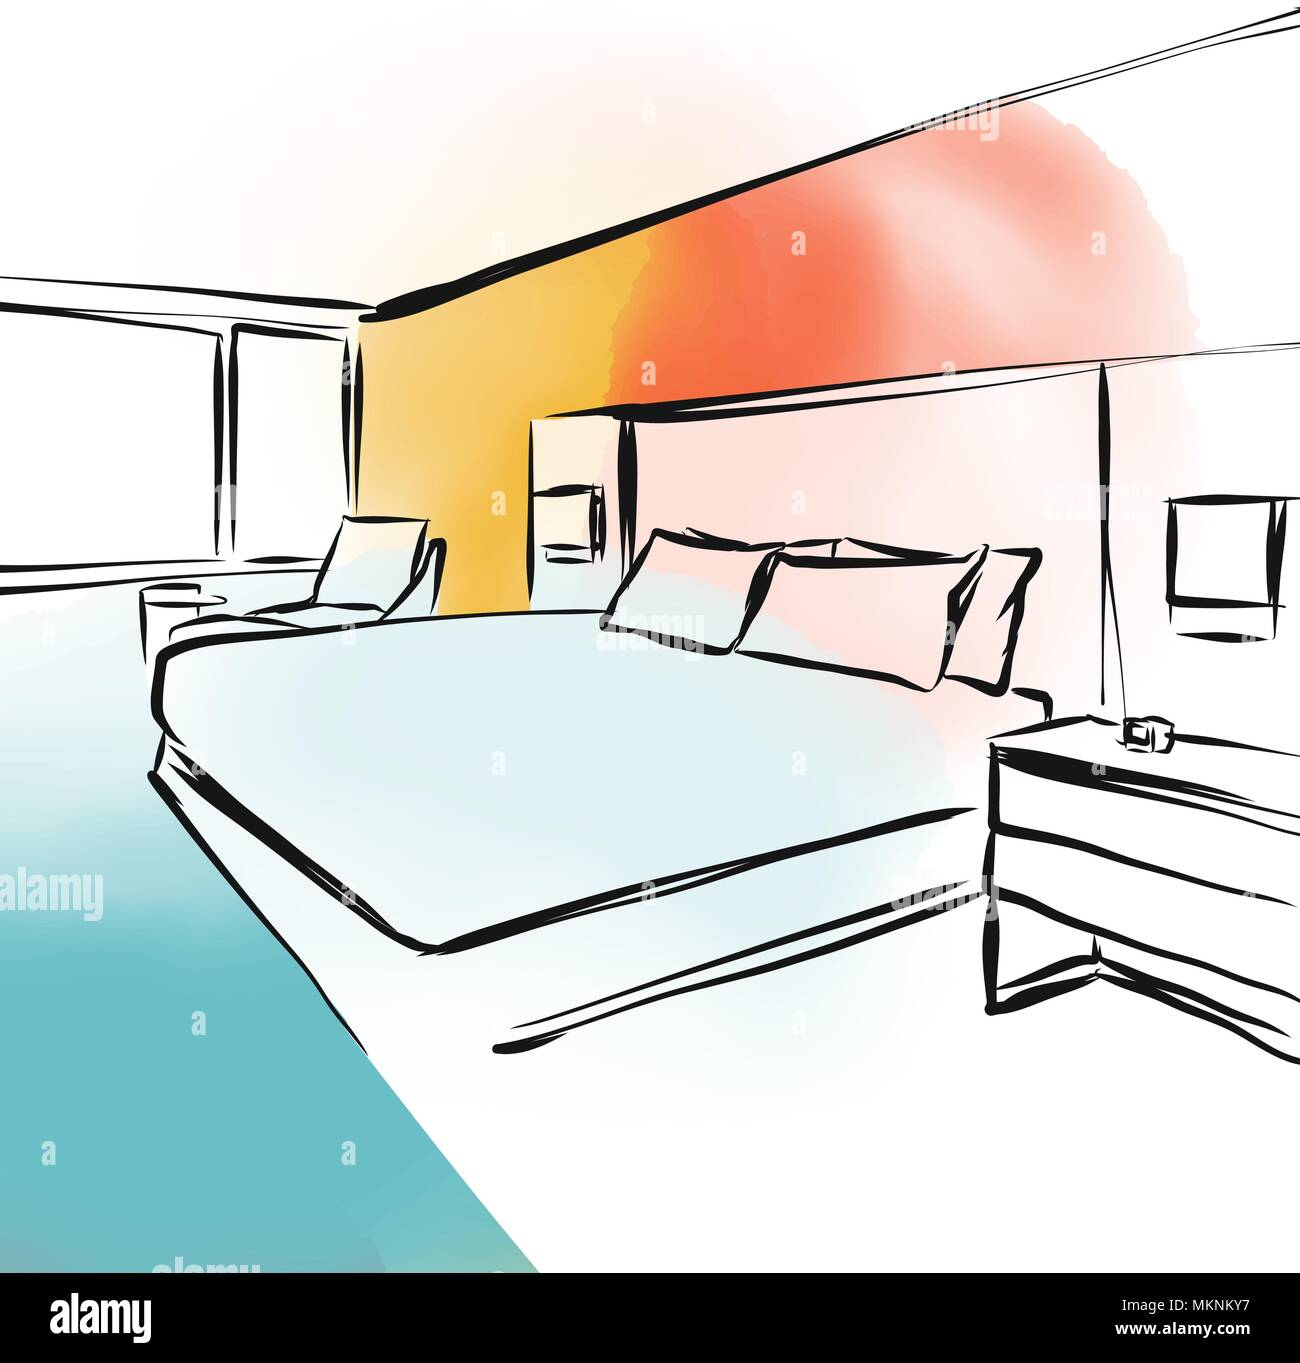 feng shui bedroom concept design sketch, hand-drawn vector illustration - Stock Vector